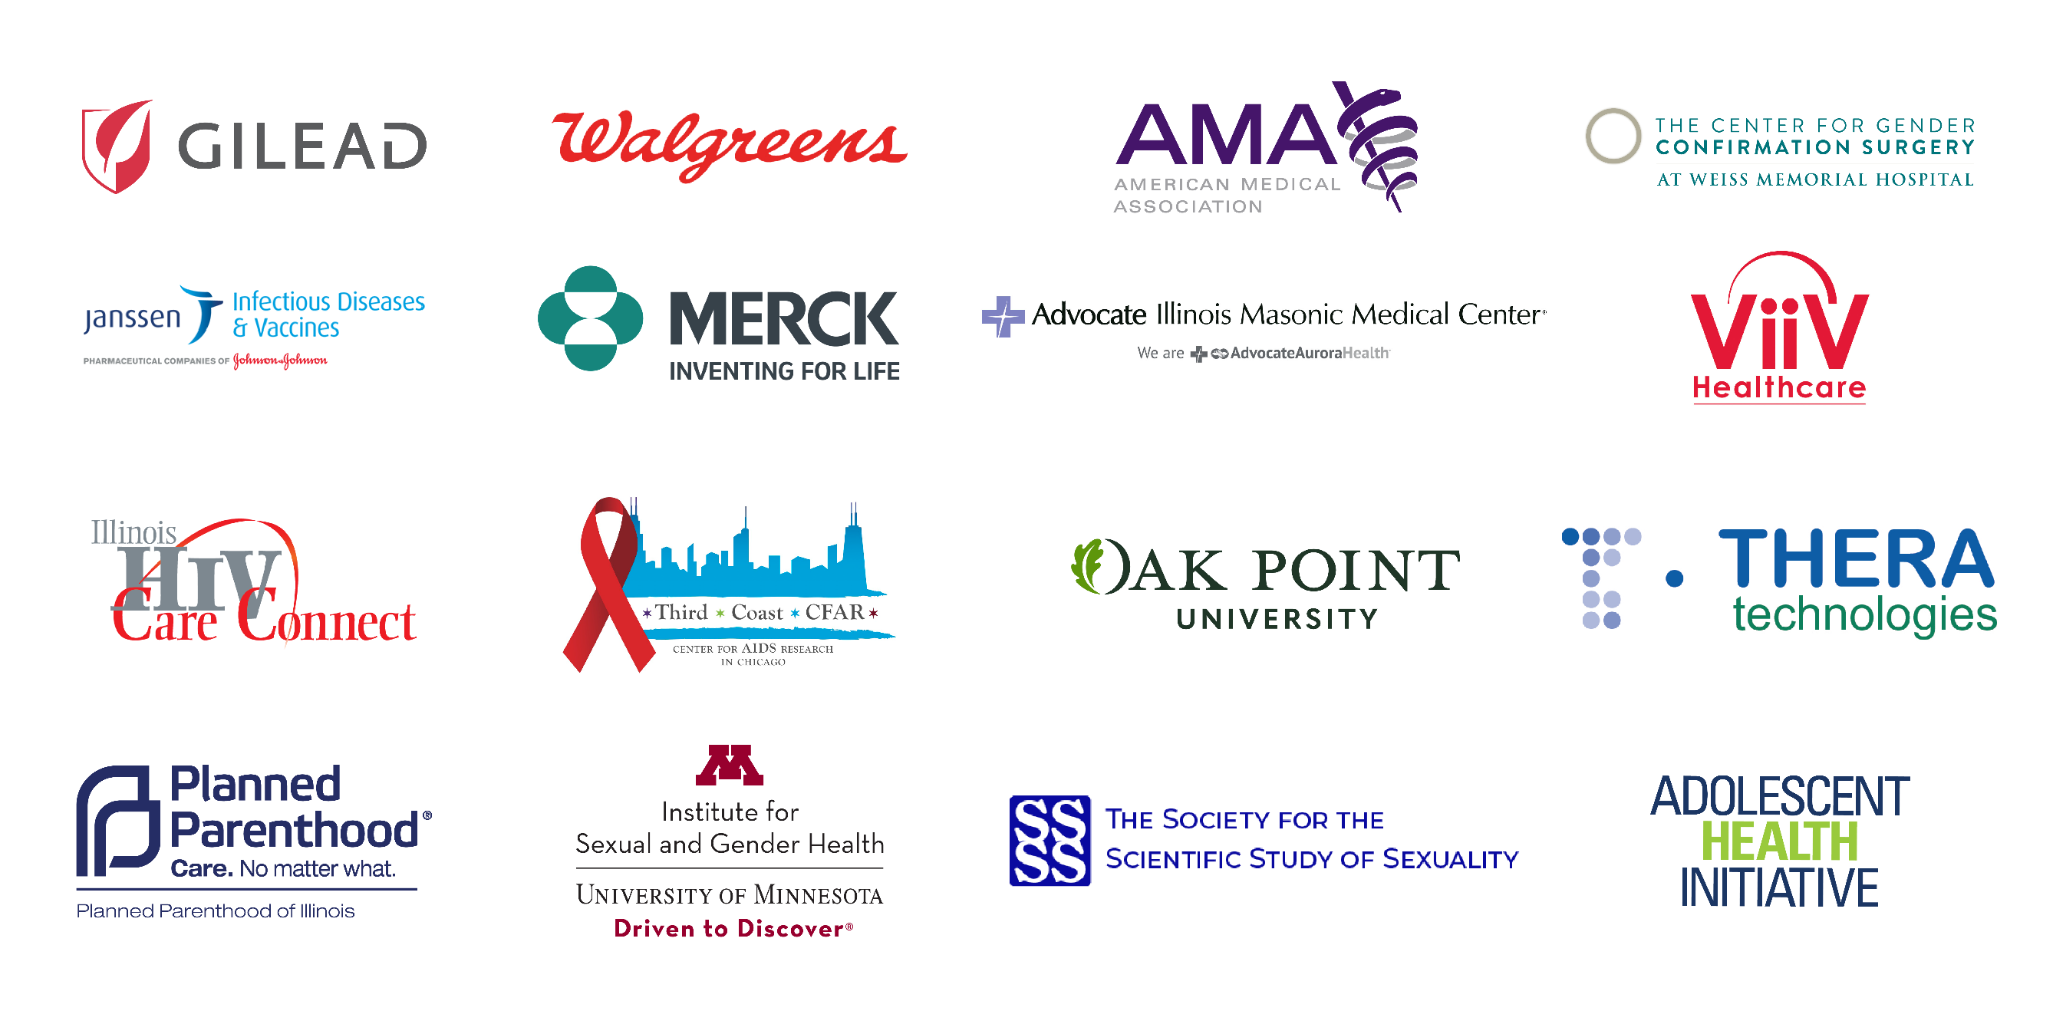 Stacked logos for Gilead, Walgreens, Weiss Memorial Hospital, HIV Care Connect, CFAR